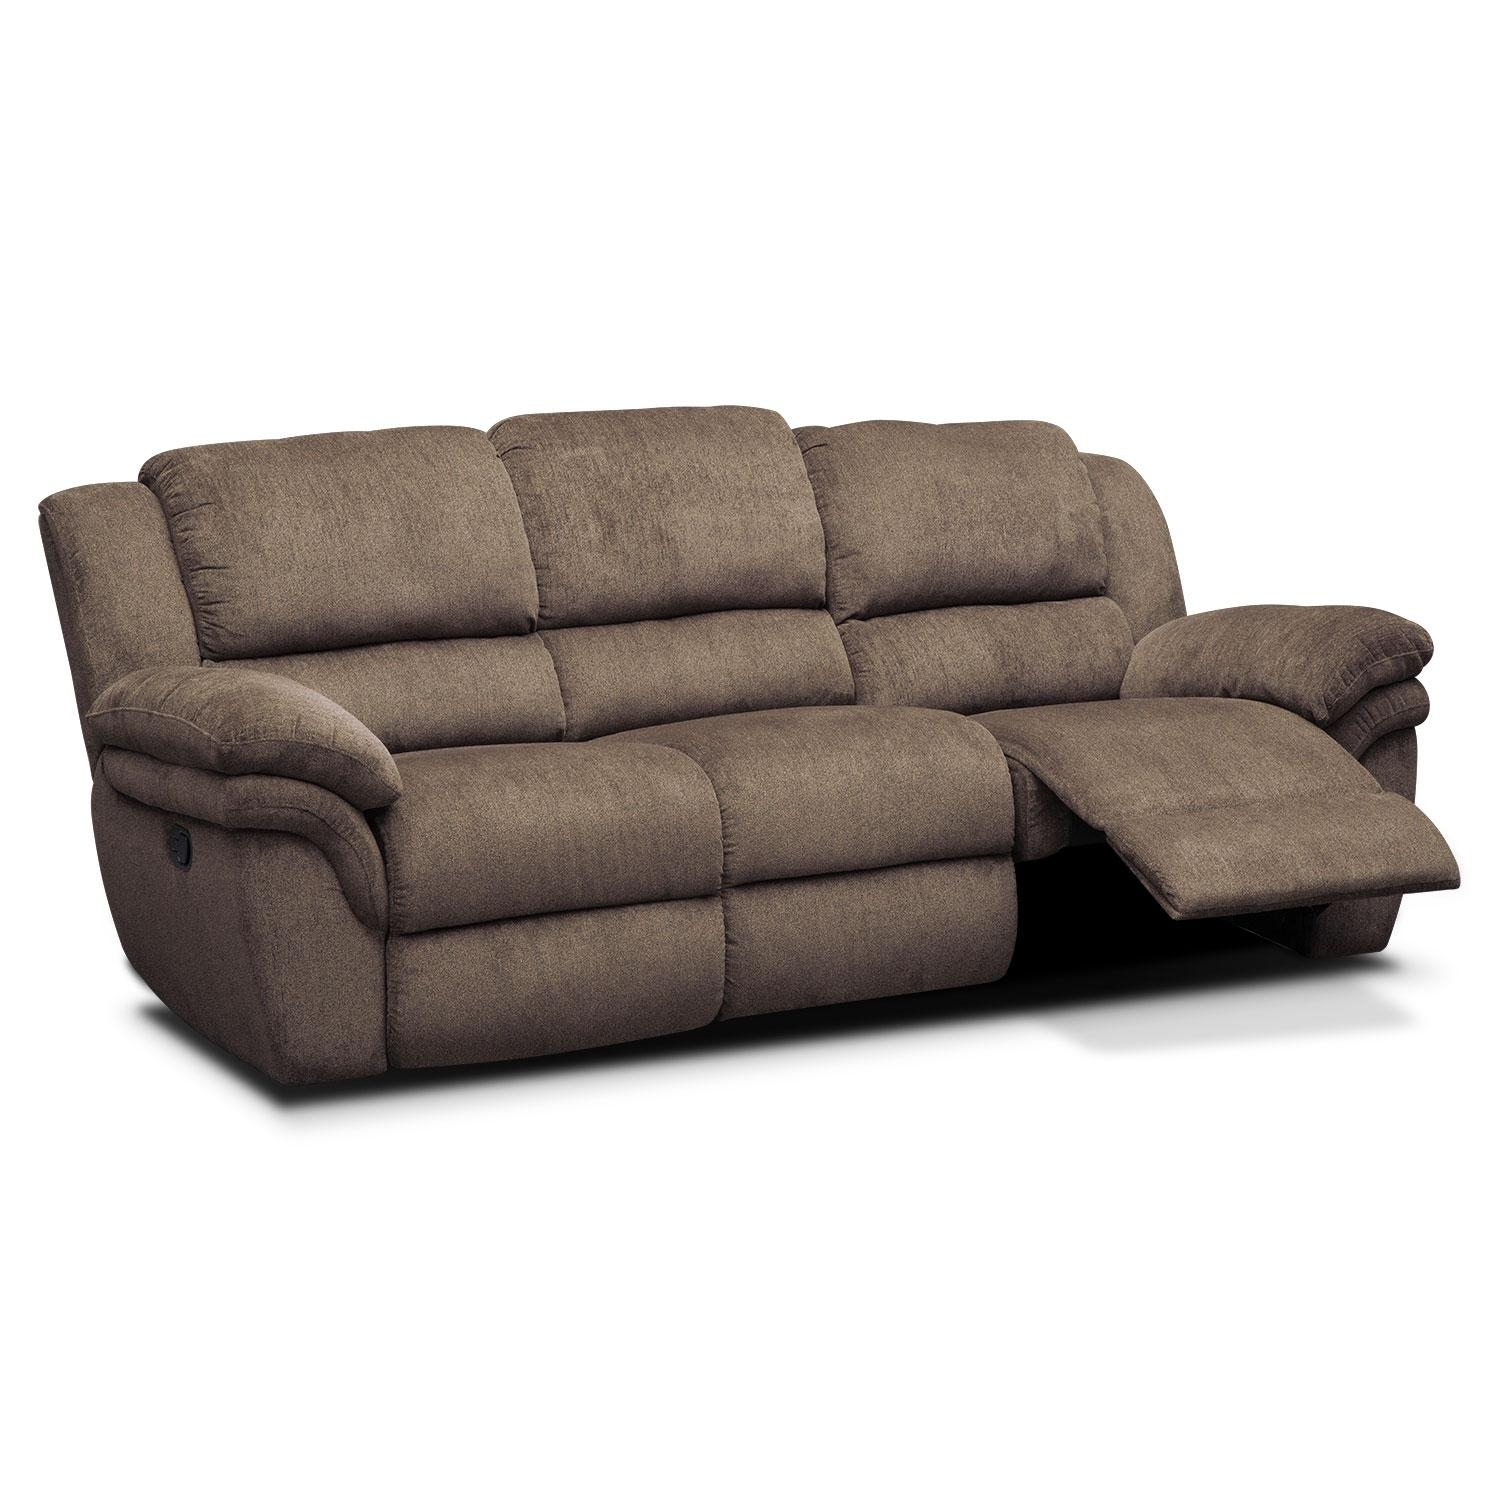 Aldo Manual Reclining Sofa – Mocha | American Signature Furniture In Recliner Sofa Chairs (Image 1 of 20)